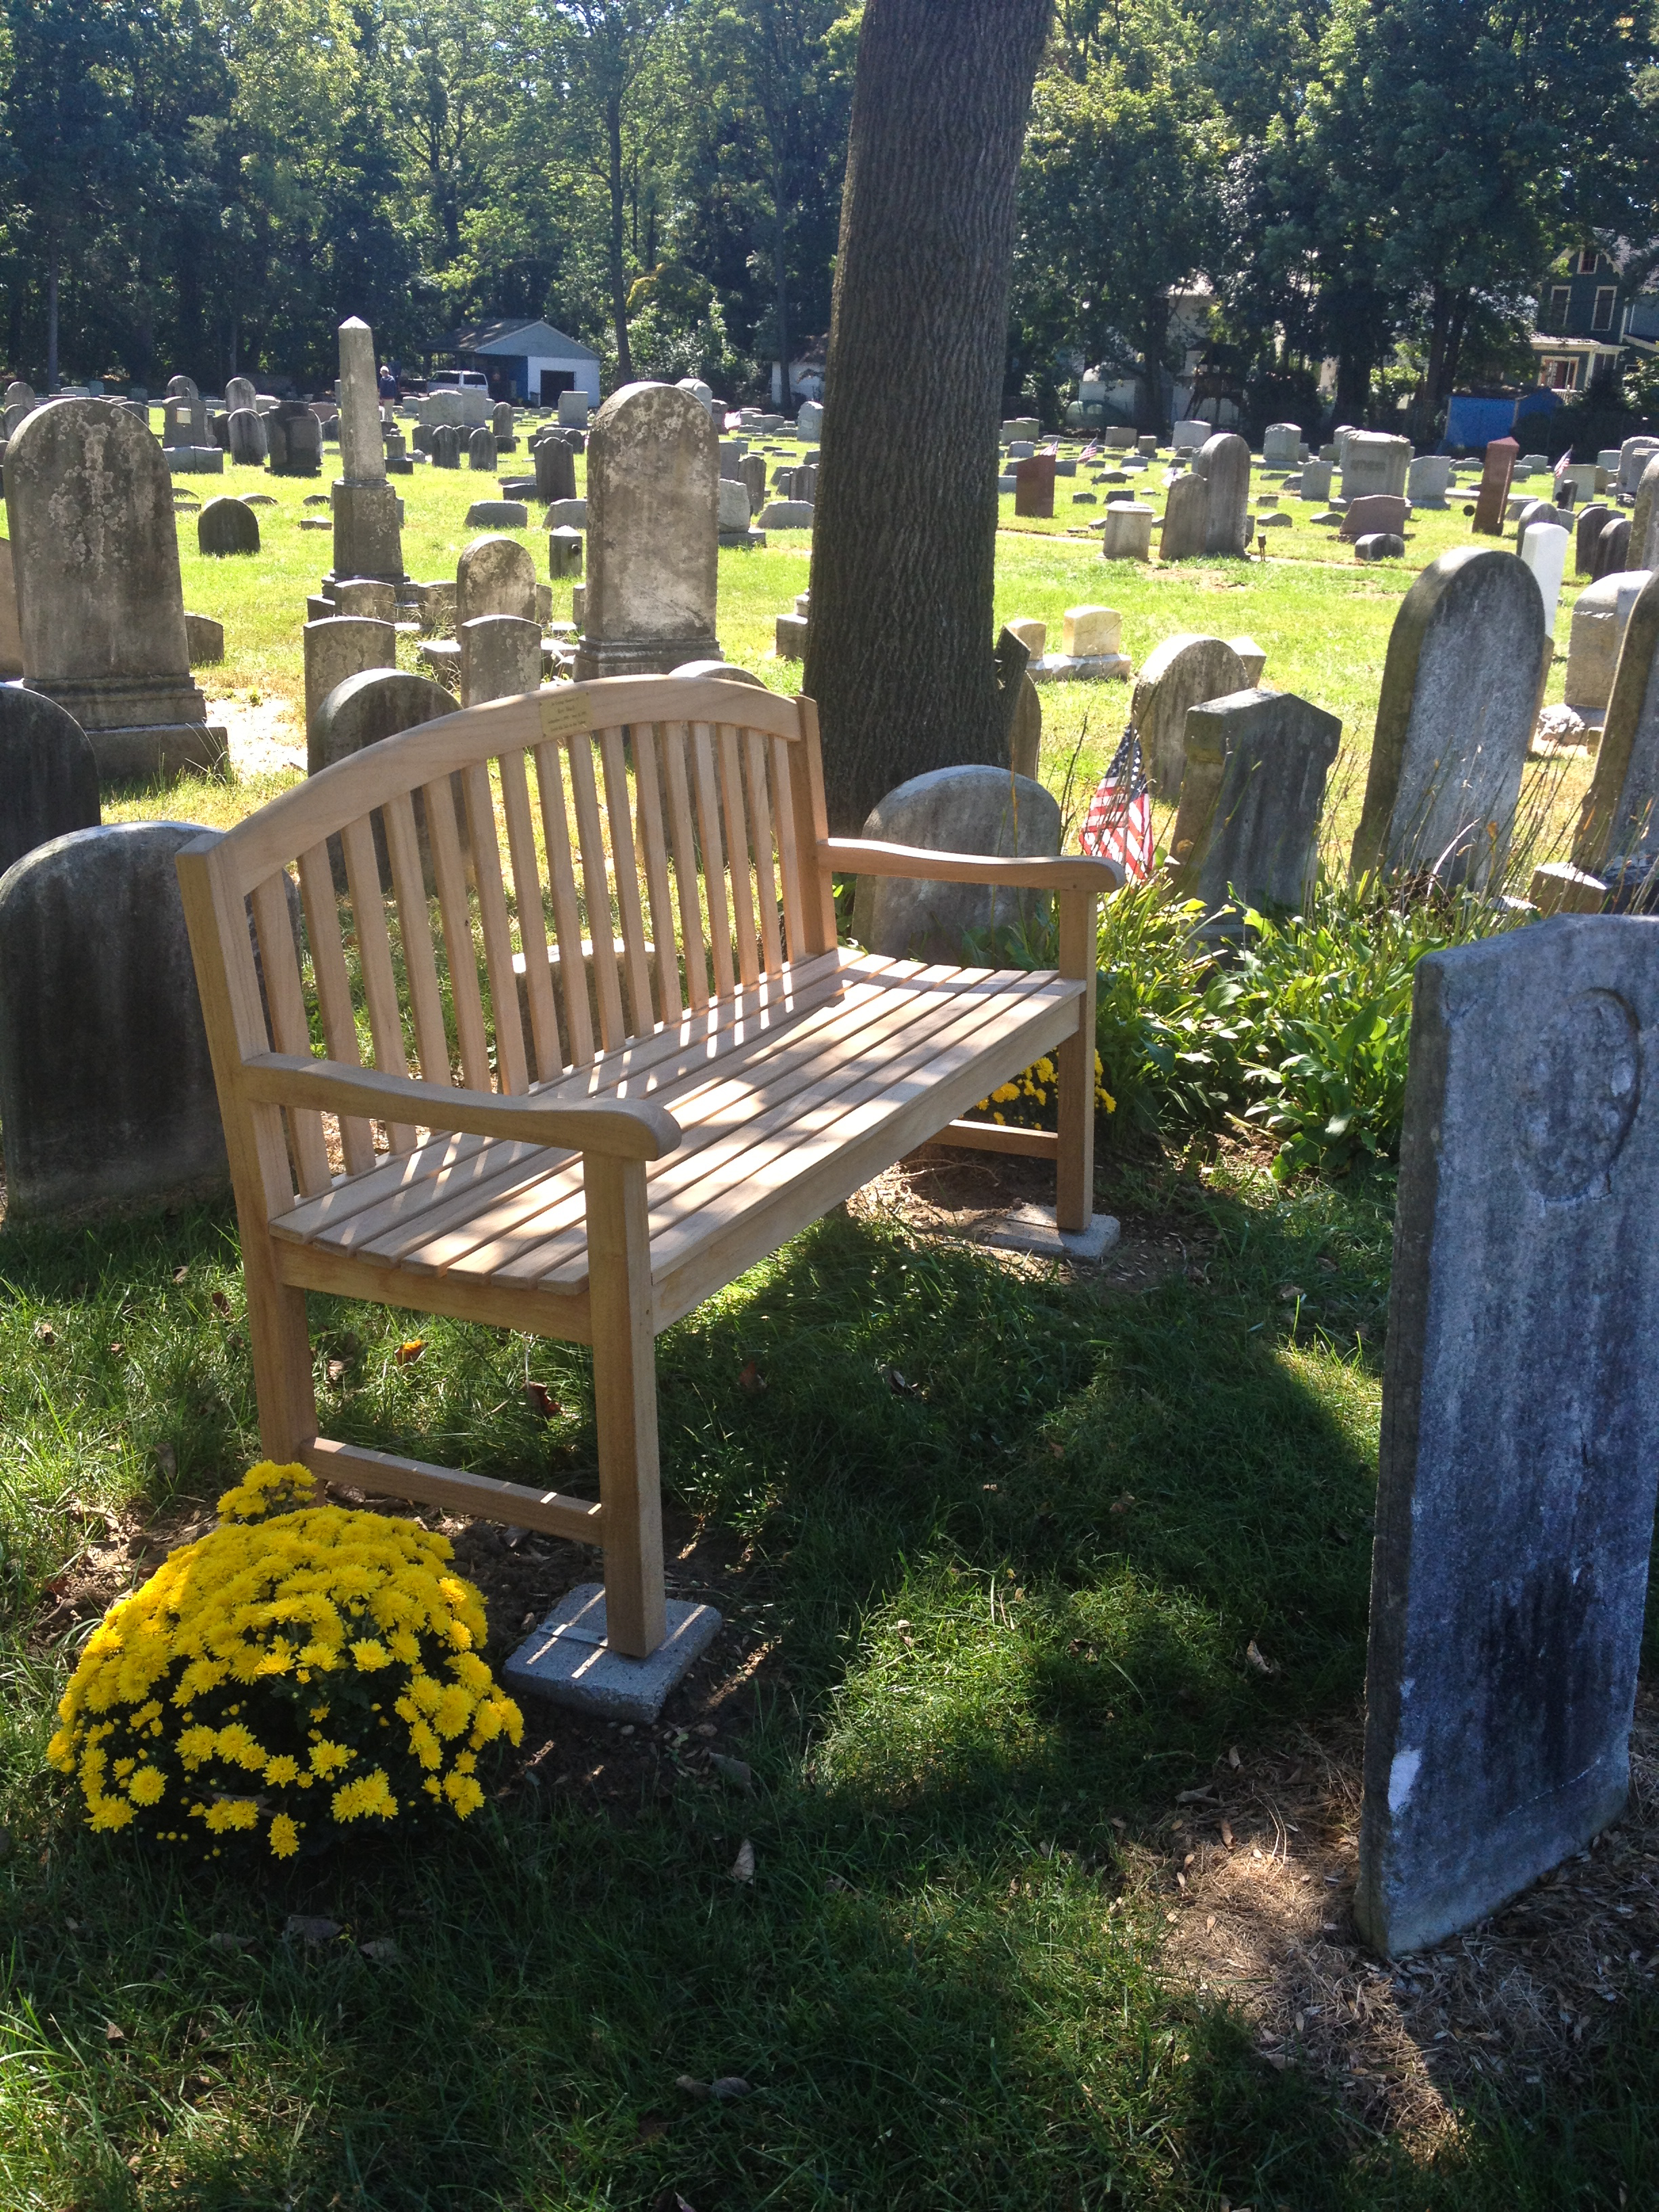 Goldenteak's Teak 5 ft Aquinah Bench at the Baptist Cemetery in Haddonfield, NJ